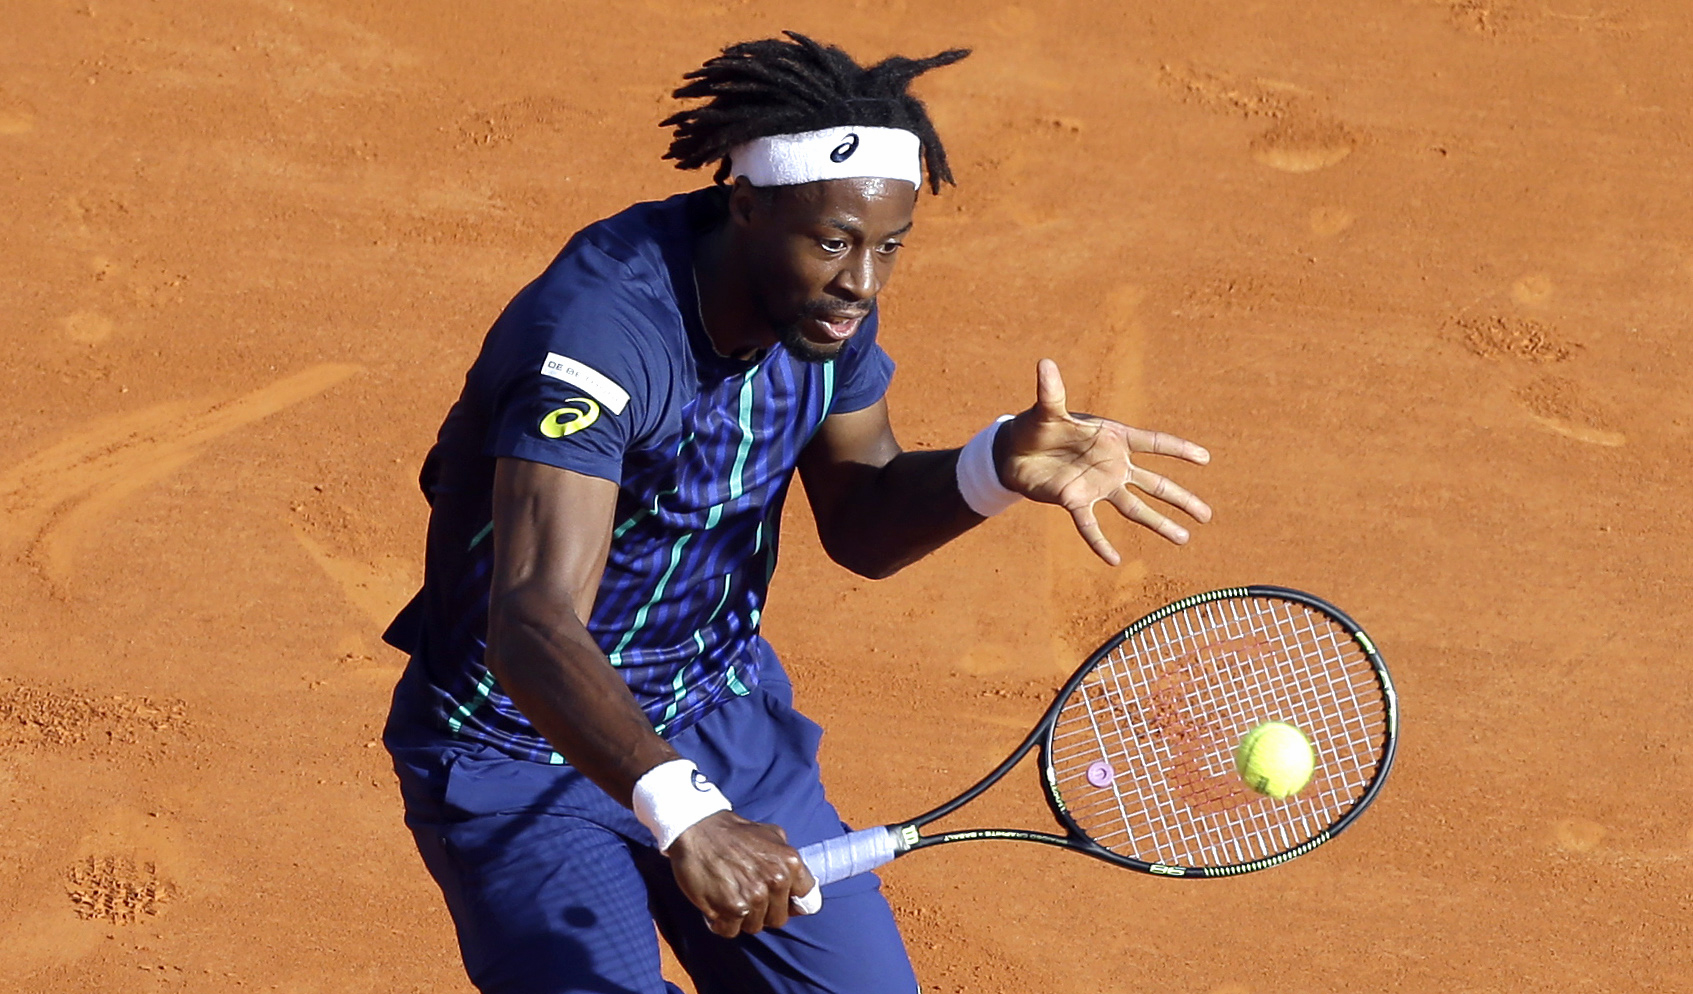 France's Gael Monfils plays a return to Marcel Granollers of Spain during their quarter final match of the Monte Carlo Tennis Masters tournament in Monaco, Friday, April 15, 2016. (AP Photo/Lionel Cironneau)